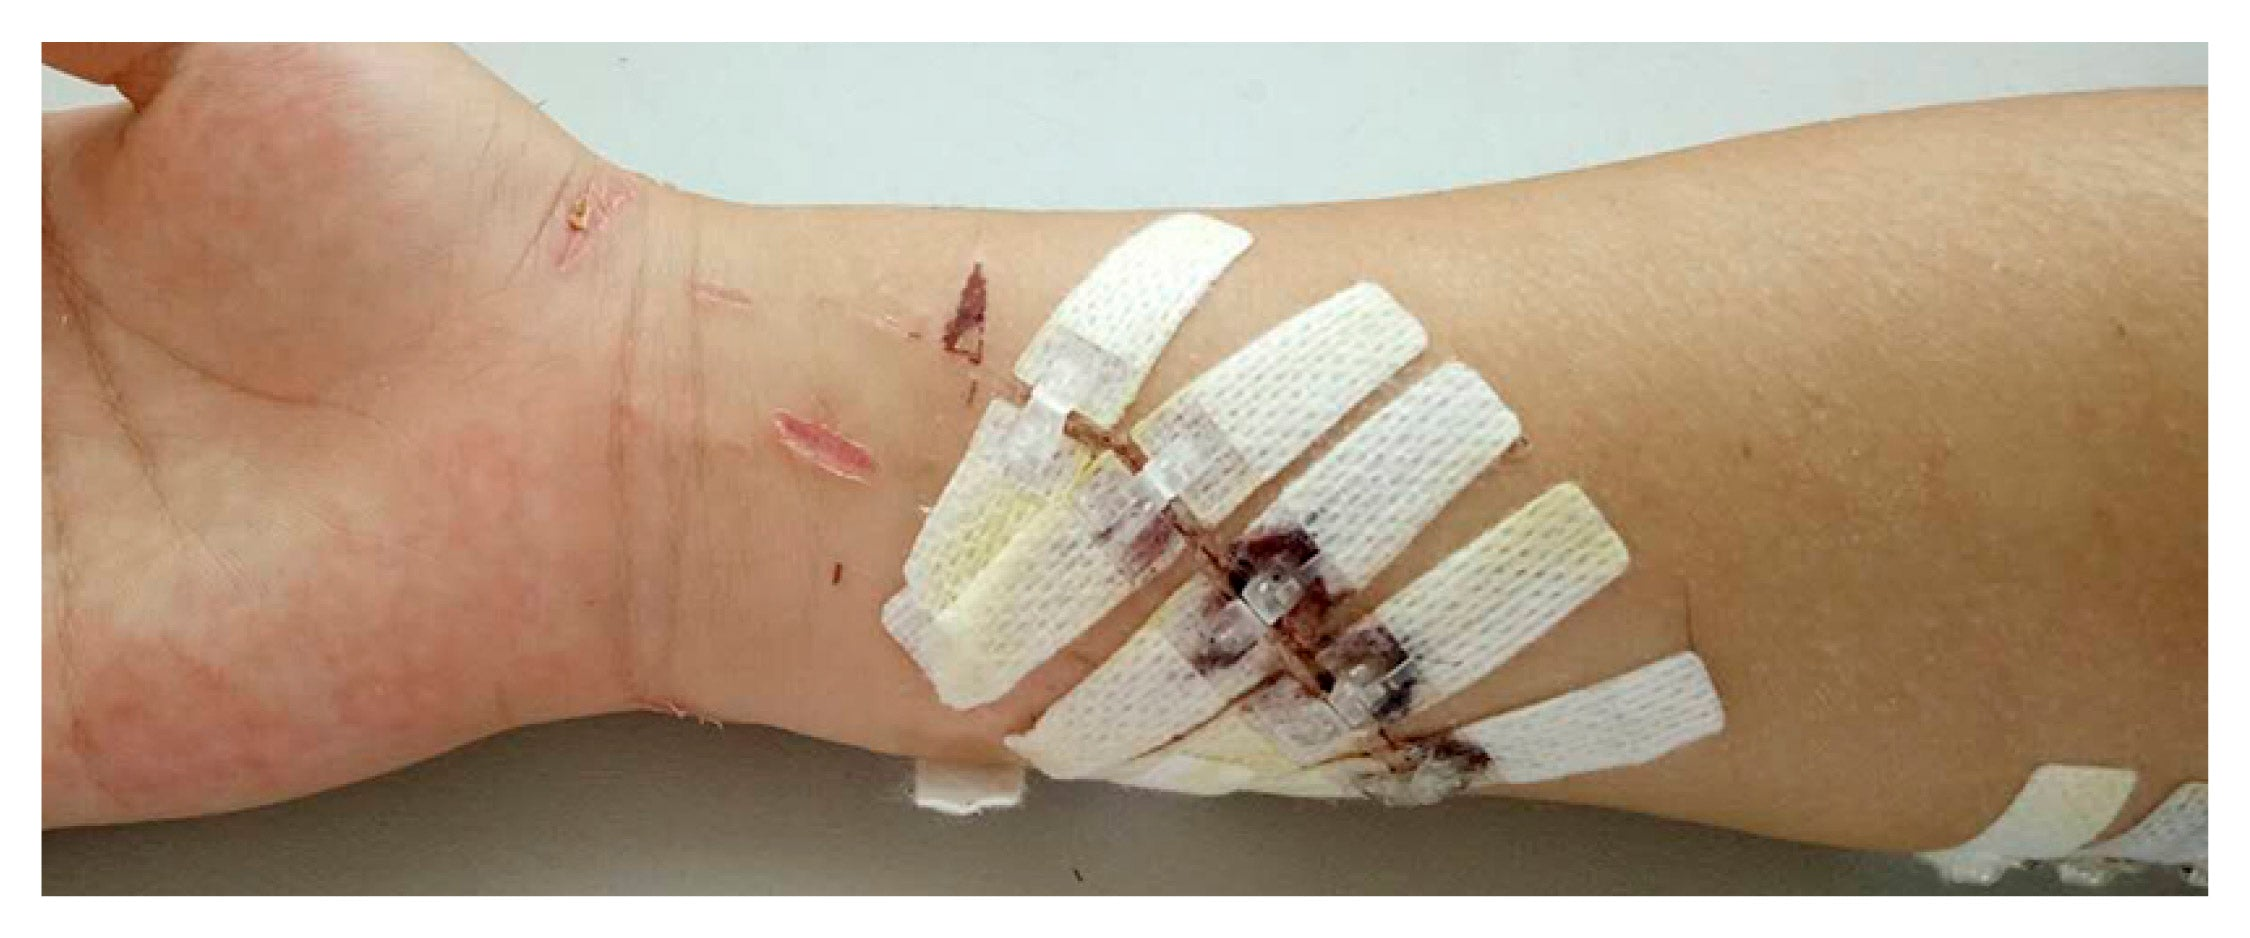 The Regular DermaClip used to close a traumatic arm laceration